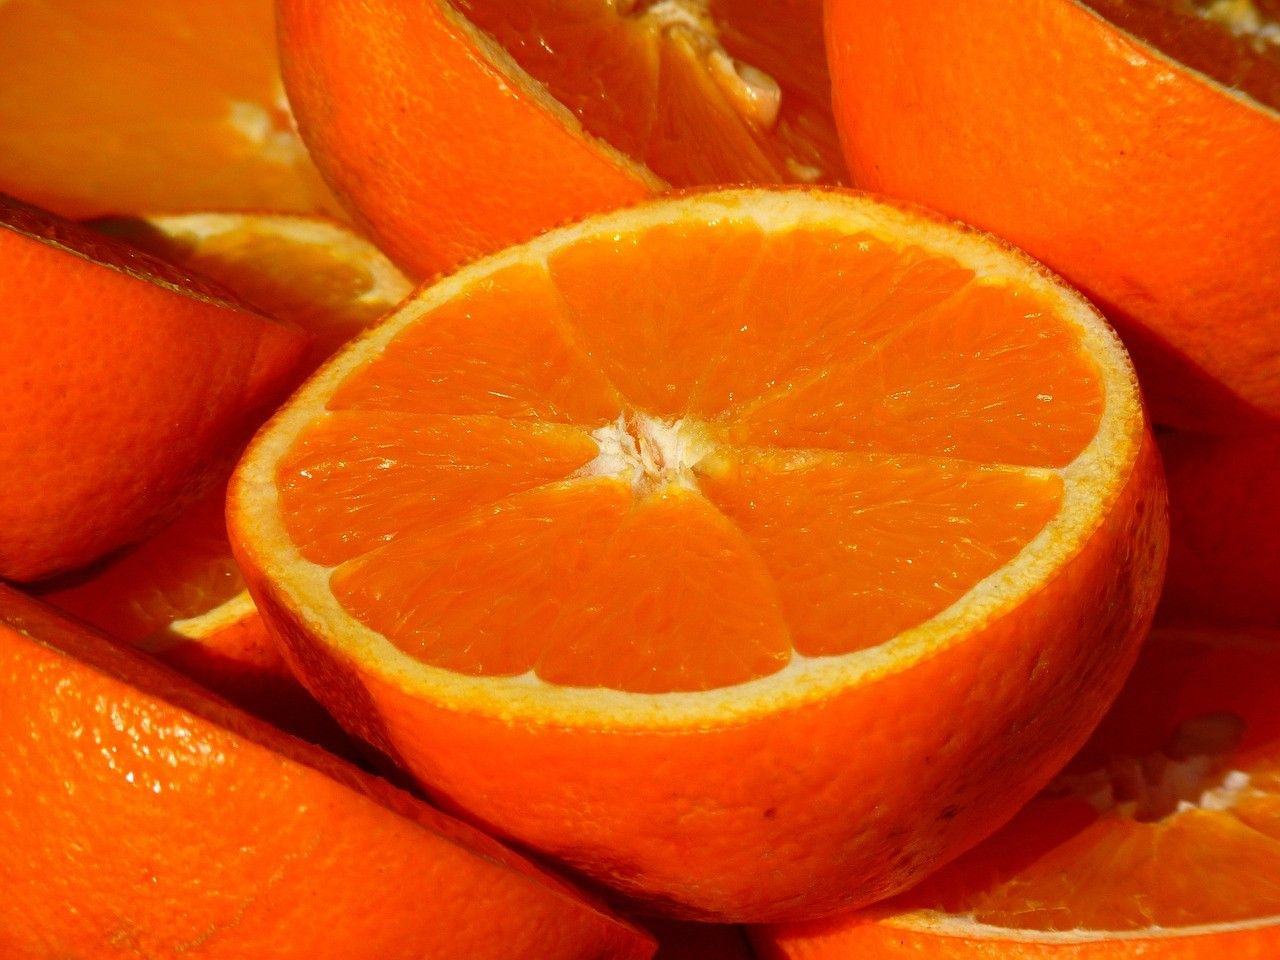 Is an orange of the 1950's equivalent to 21 of today's oranges?